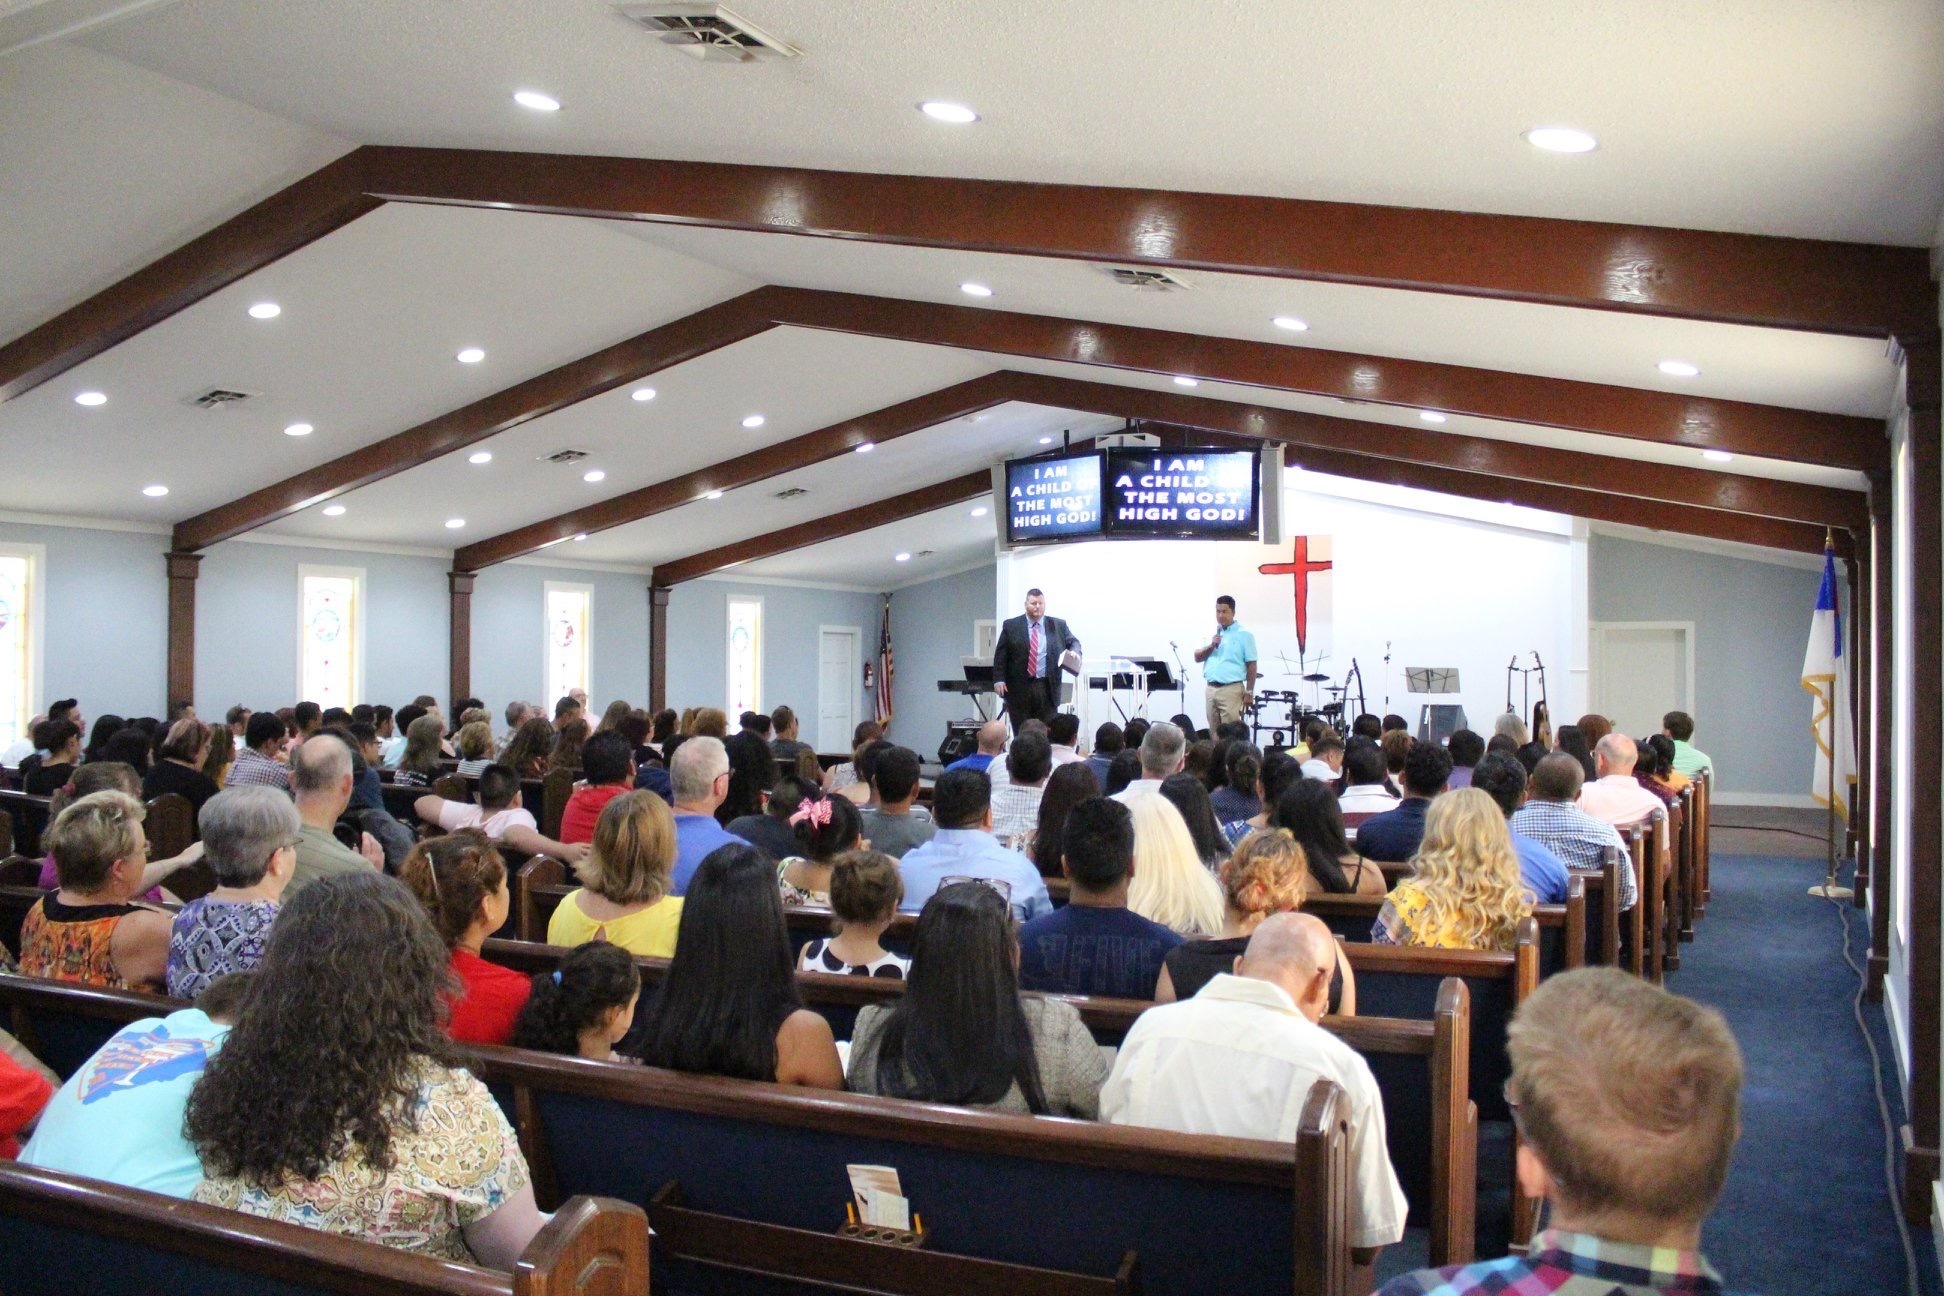 SC, Lancaster - EASTSIDE BAPTIST CHURCH(1.2)